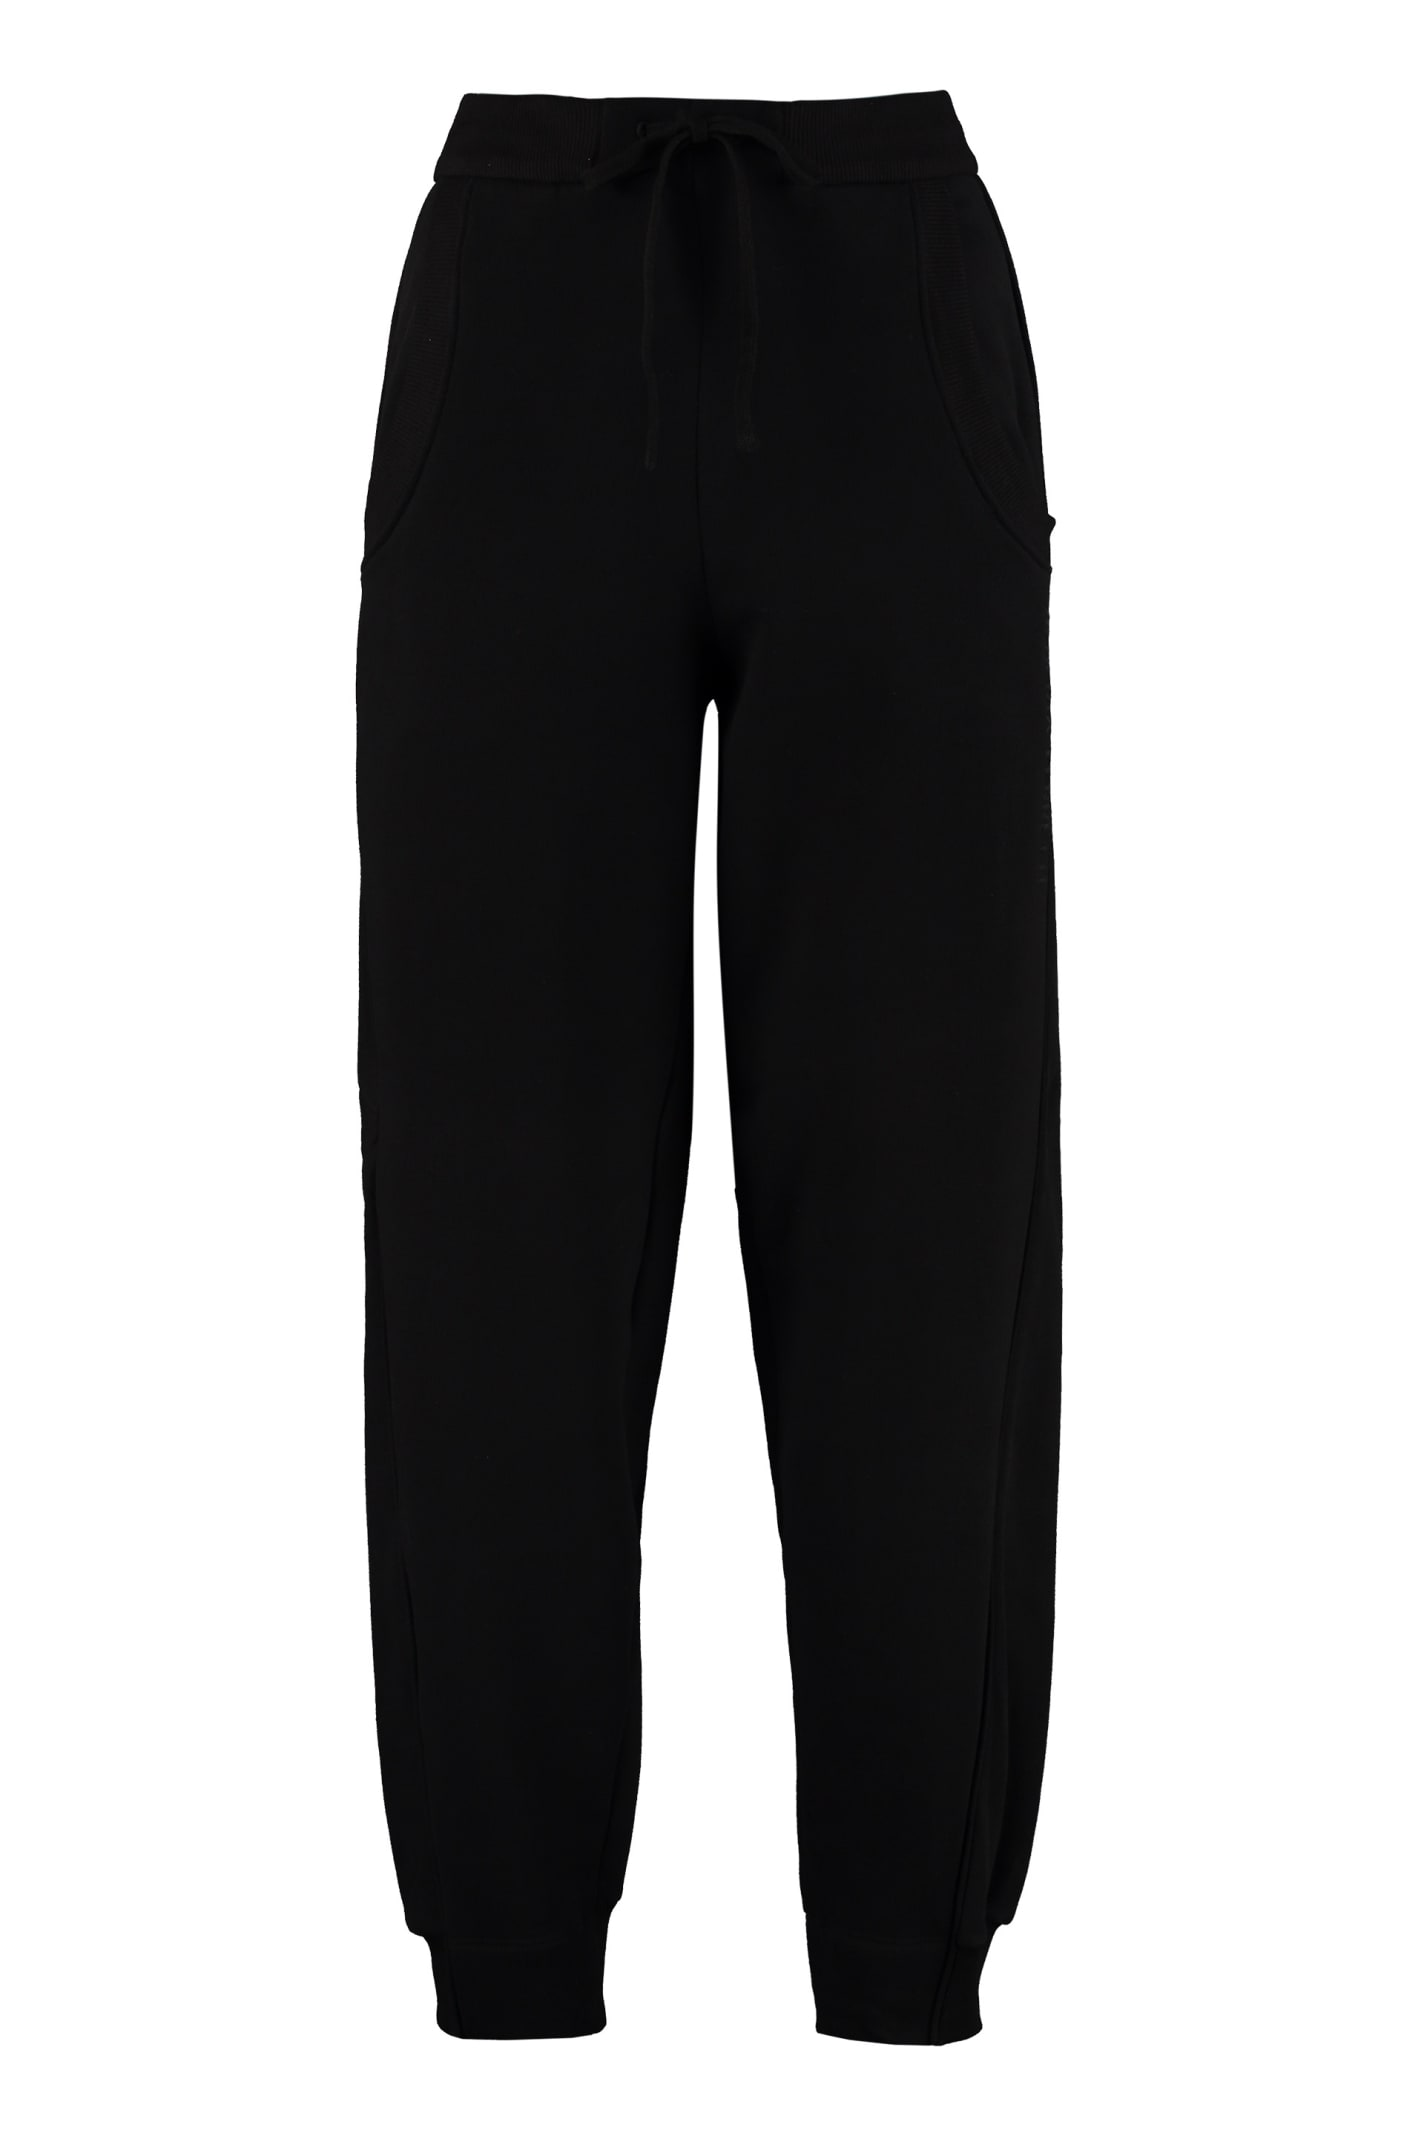 Alberta Ferretti Cotton Sweatpants